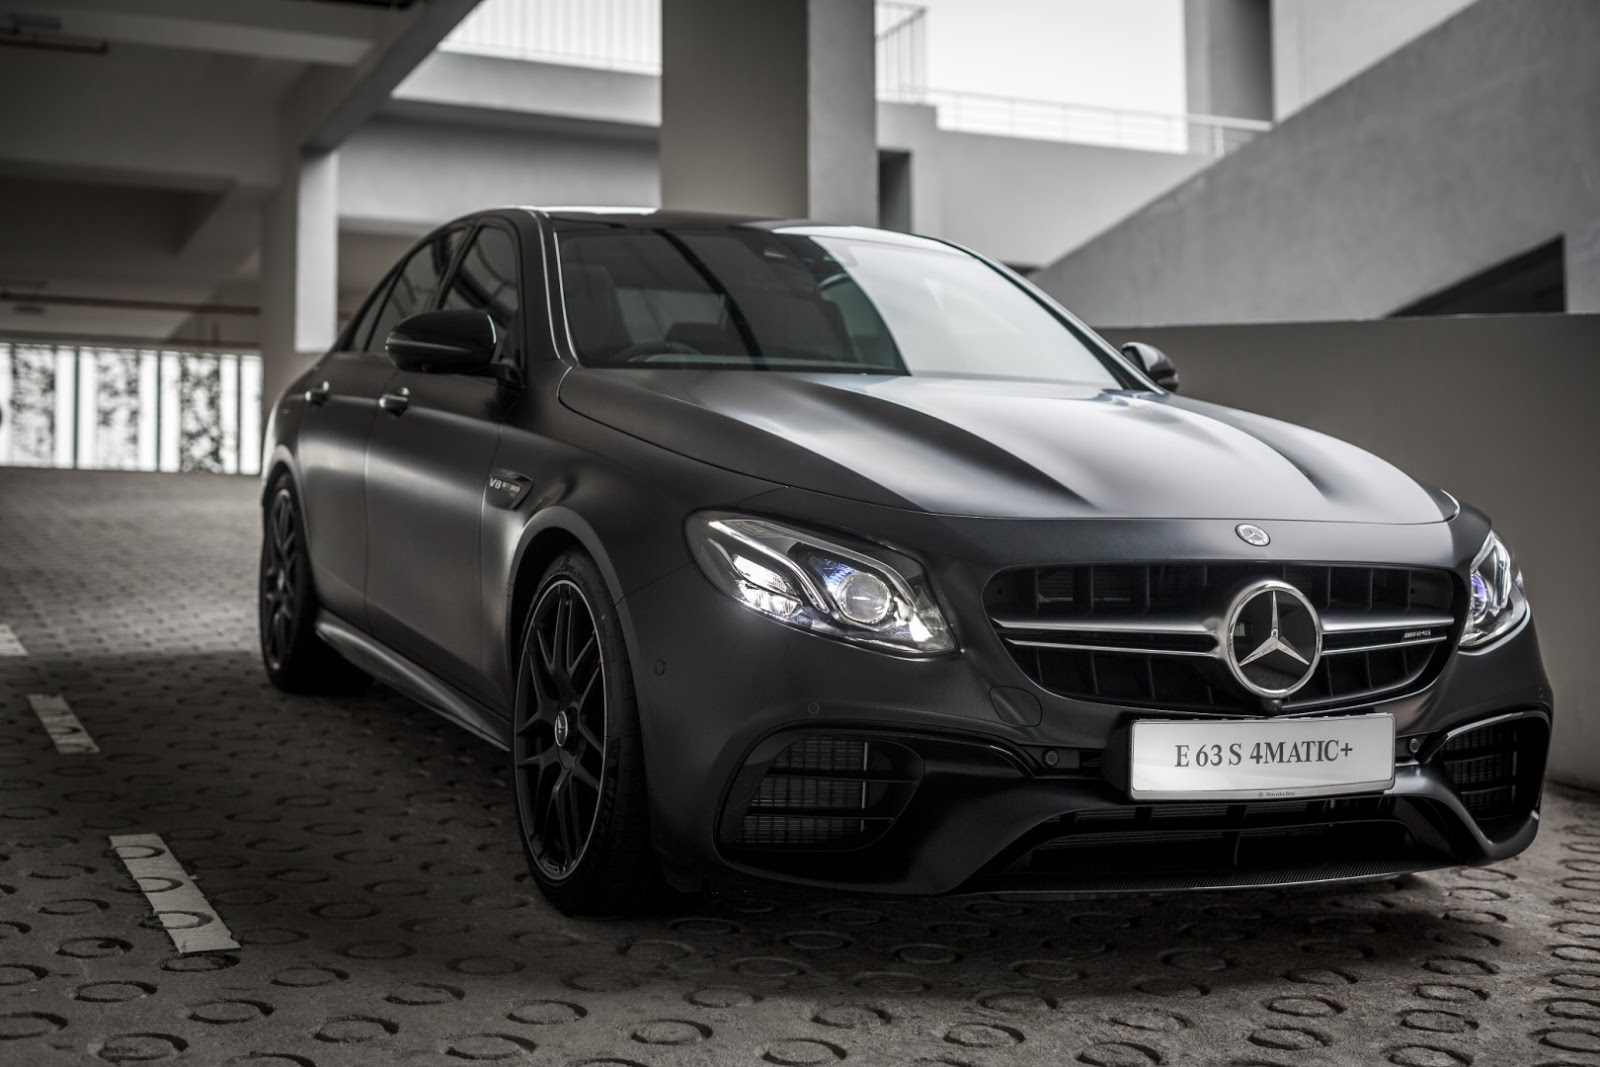 Motoring malaysia mercedes benz e 63 s 4matic is now for Mercedes benz e63 amg price